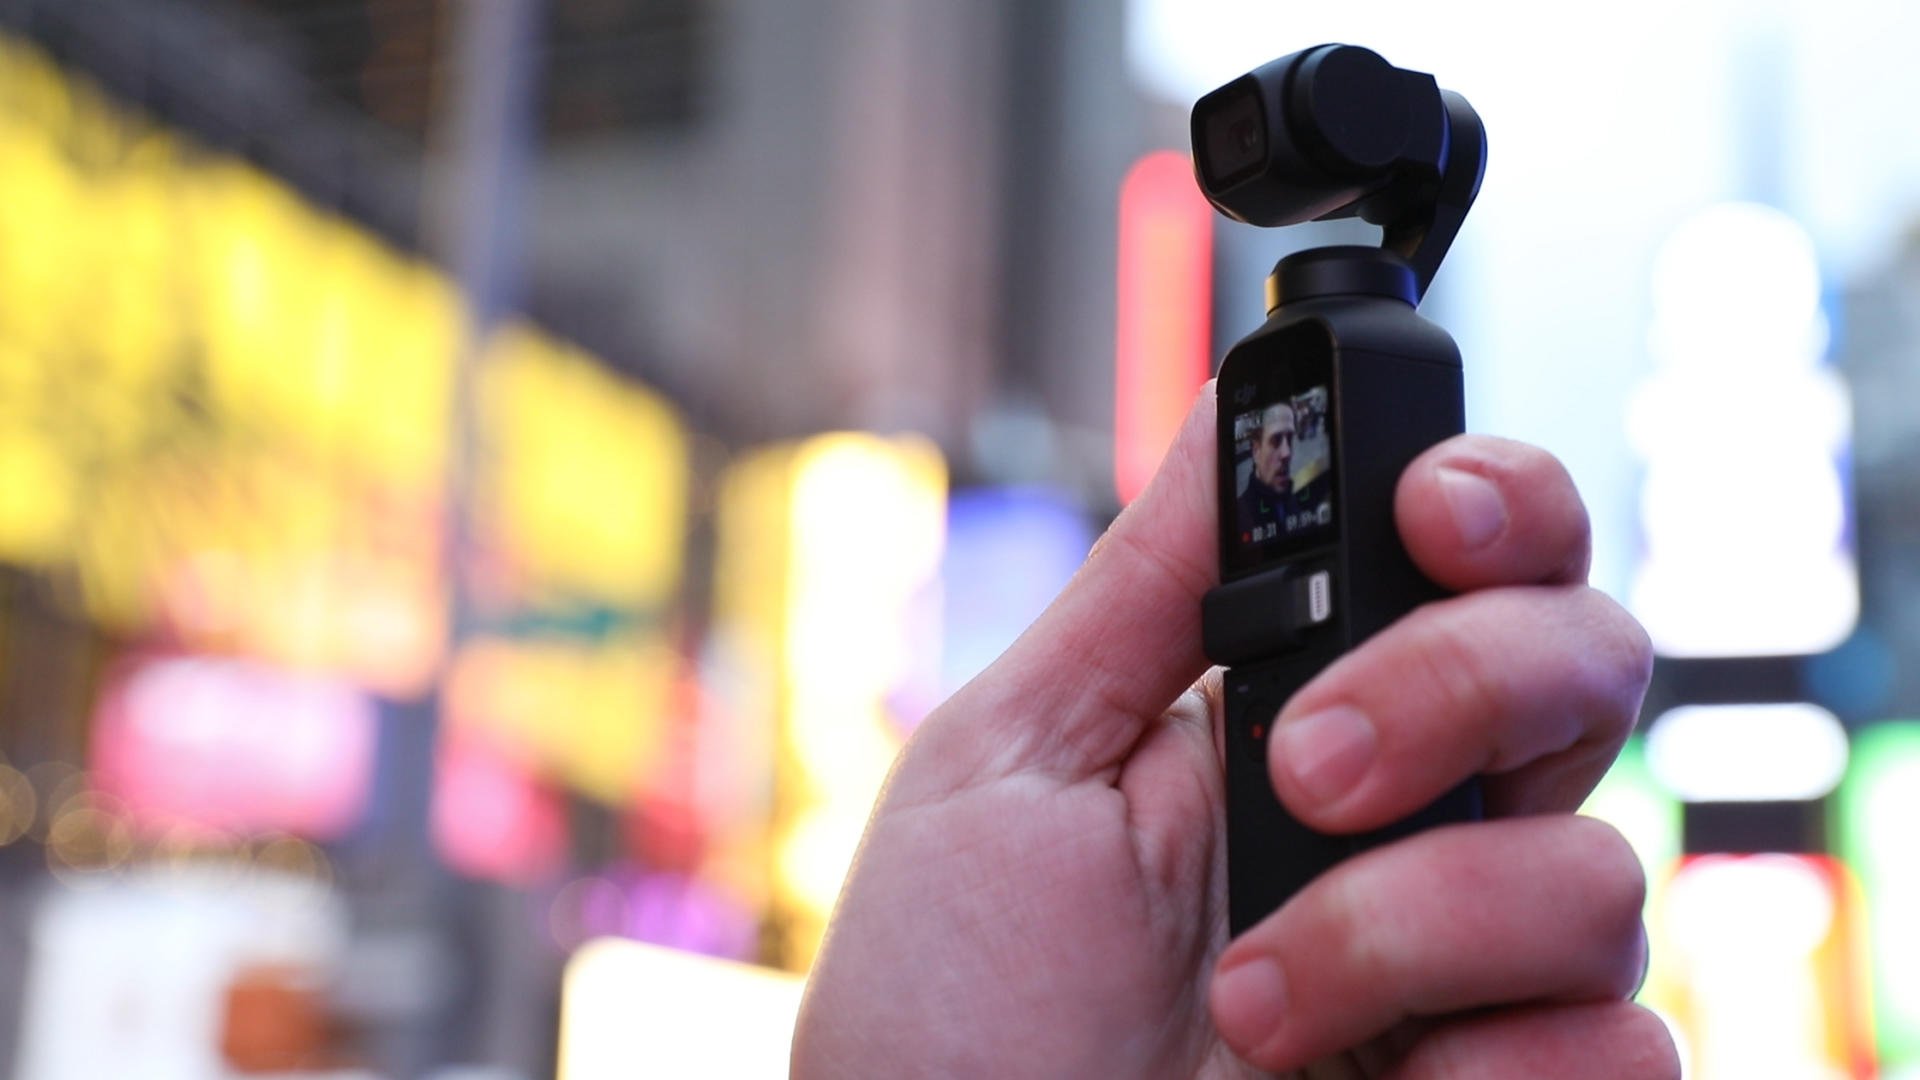 Video: DJI's Osmo Pocket is an amazingly small stabilized 4K camera for creators